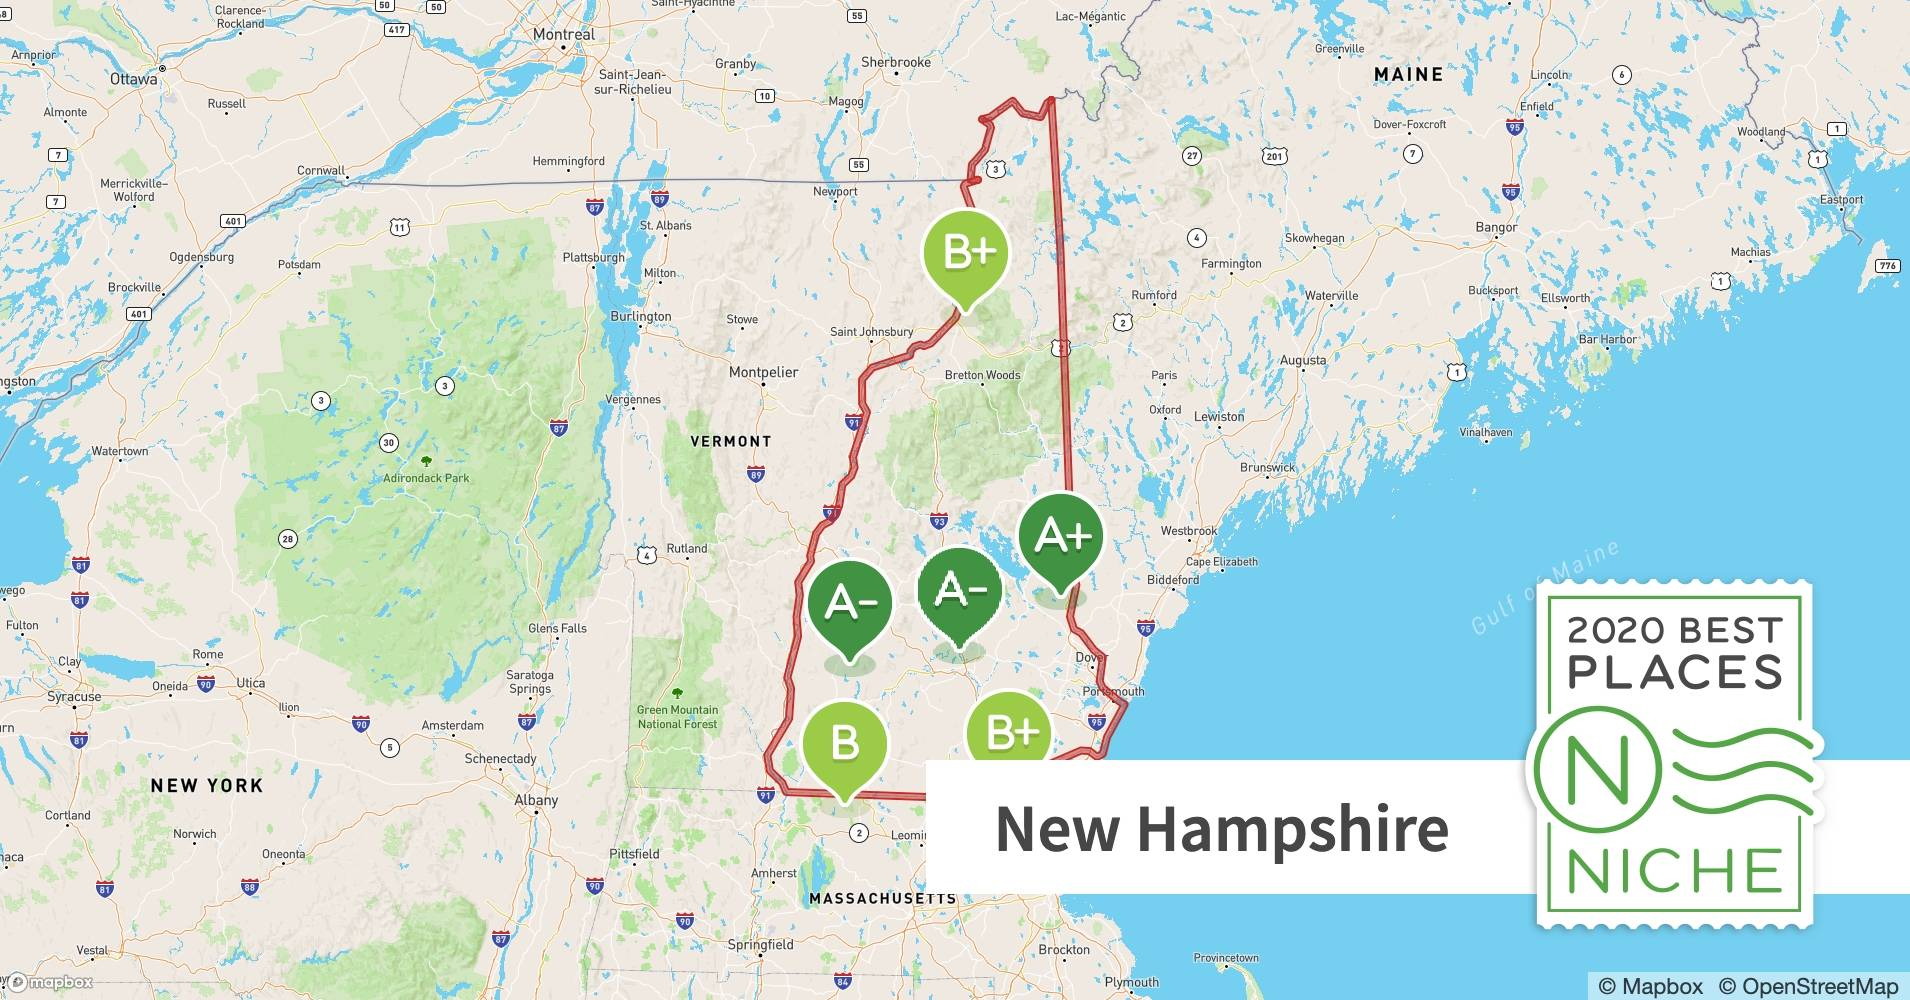 2020 Best Places To Live In New Hampshire Niche